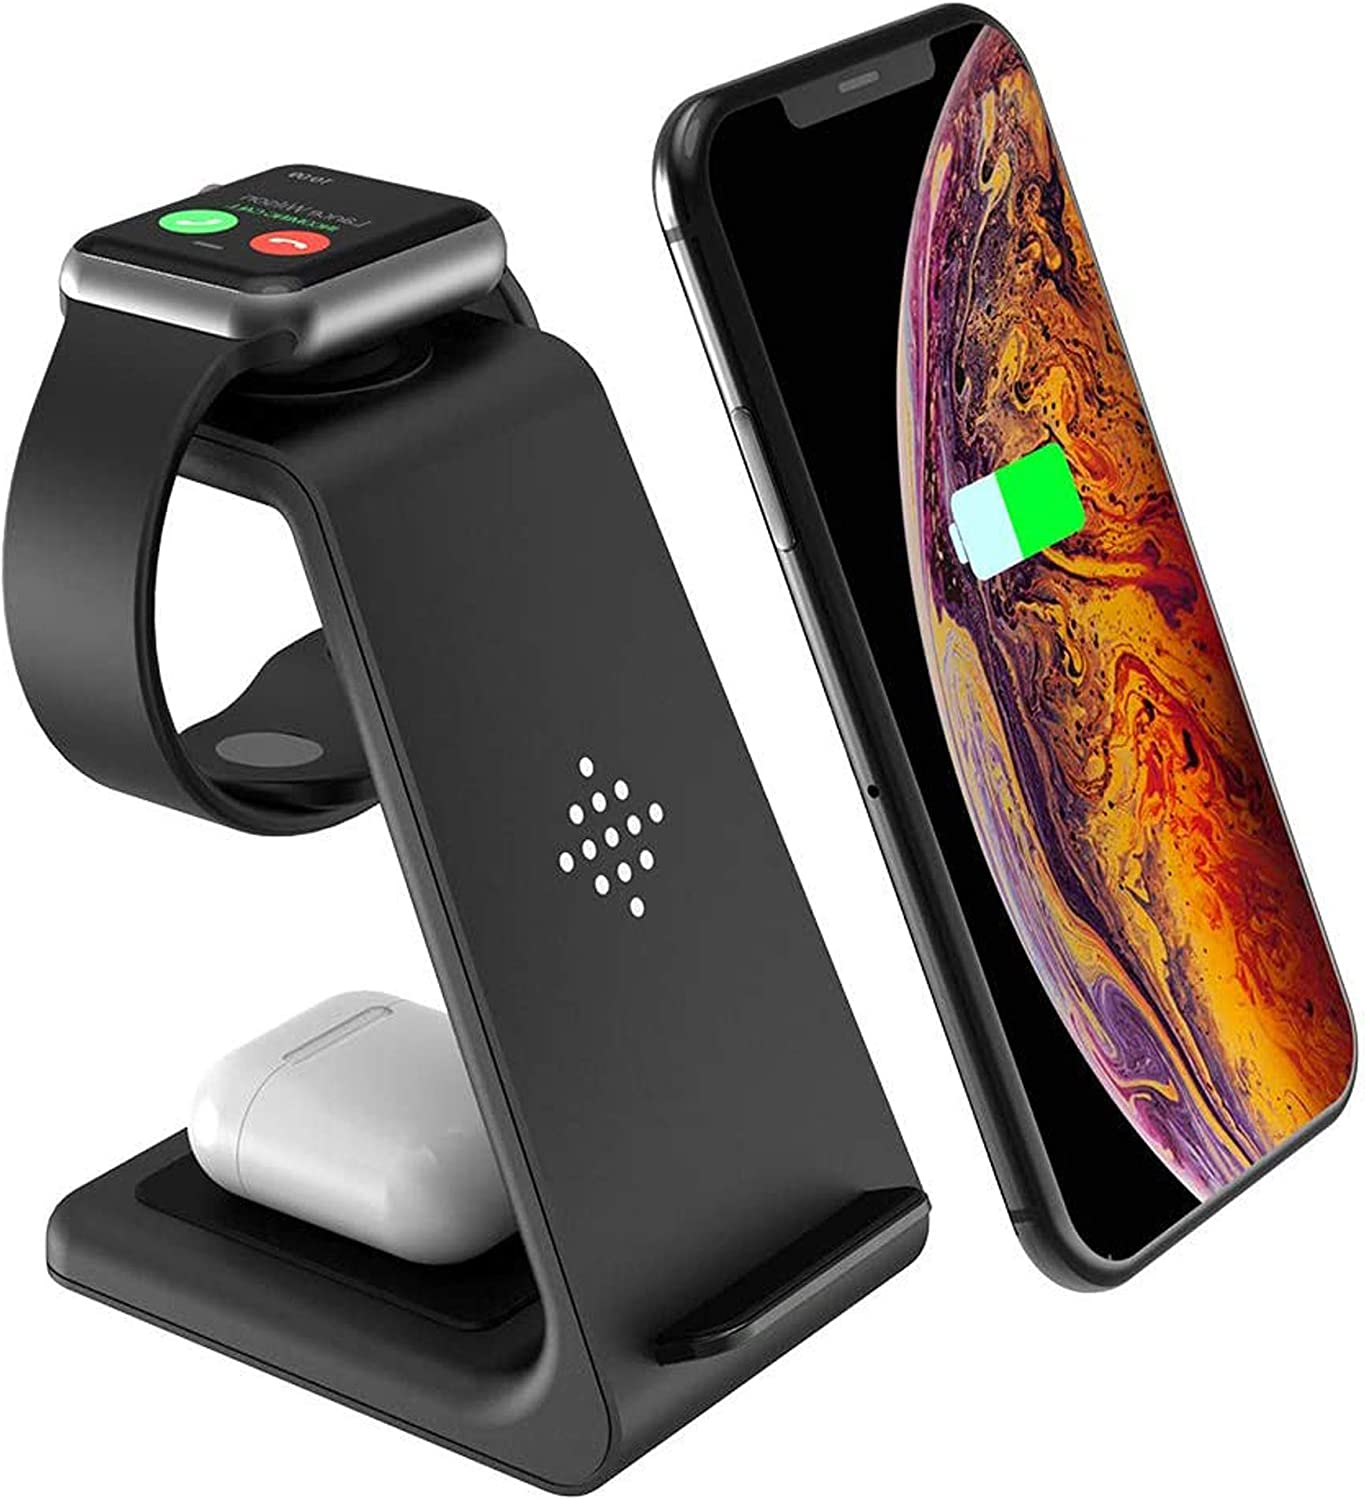 LEXONIX Wireless Charging Stand, 3 in 1 Wireless Charger Fast Charging Dock Station for Apple Watch 6 SE 5 4 3 2, Airpods 2/Pro, iPhone 12/12 Pro/12 Pro Max/11/11 Pro/X/Xr/Xs/8 Plus, Qi Phones